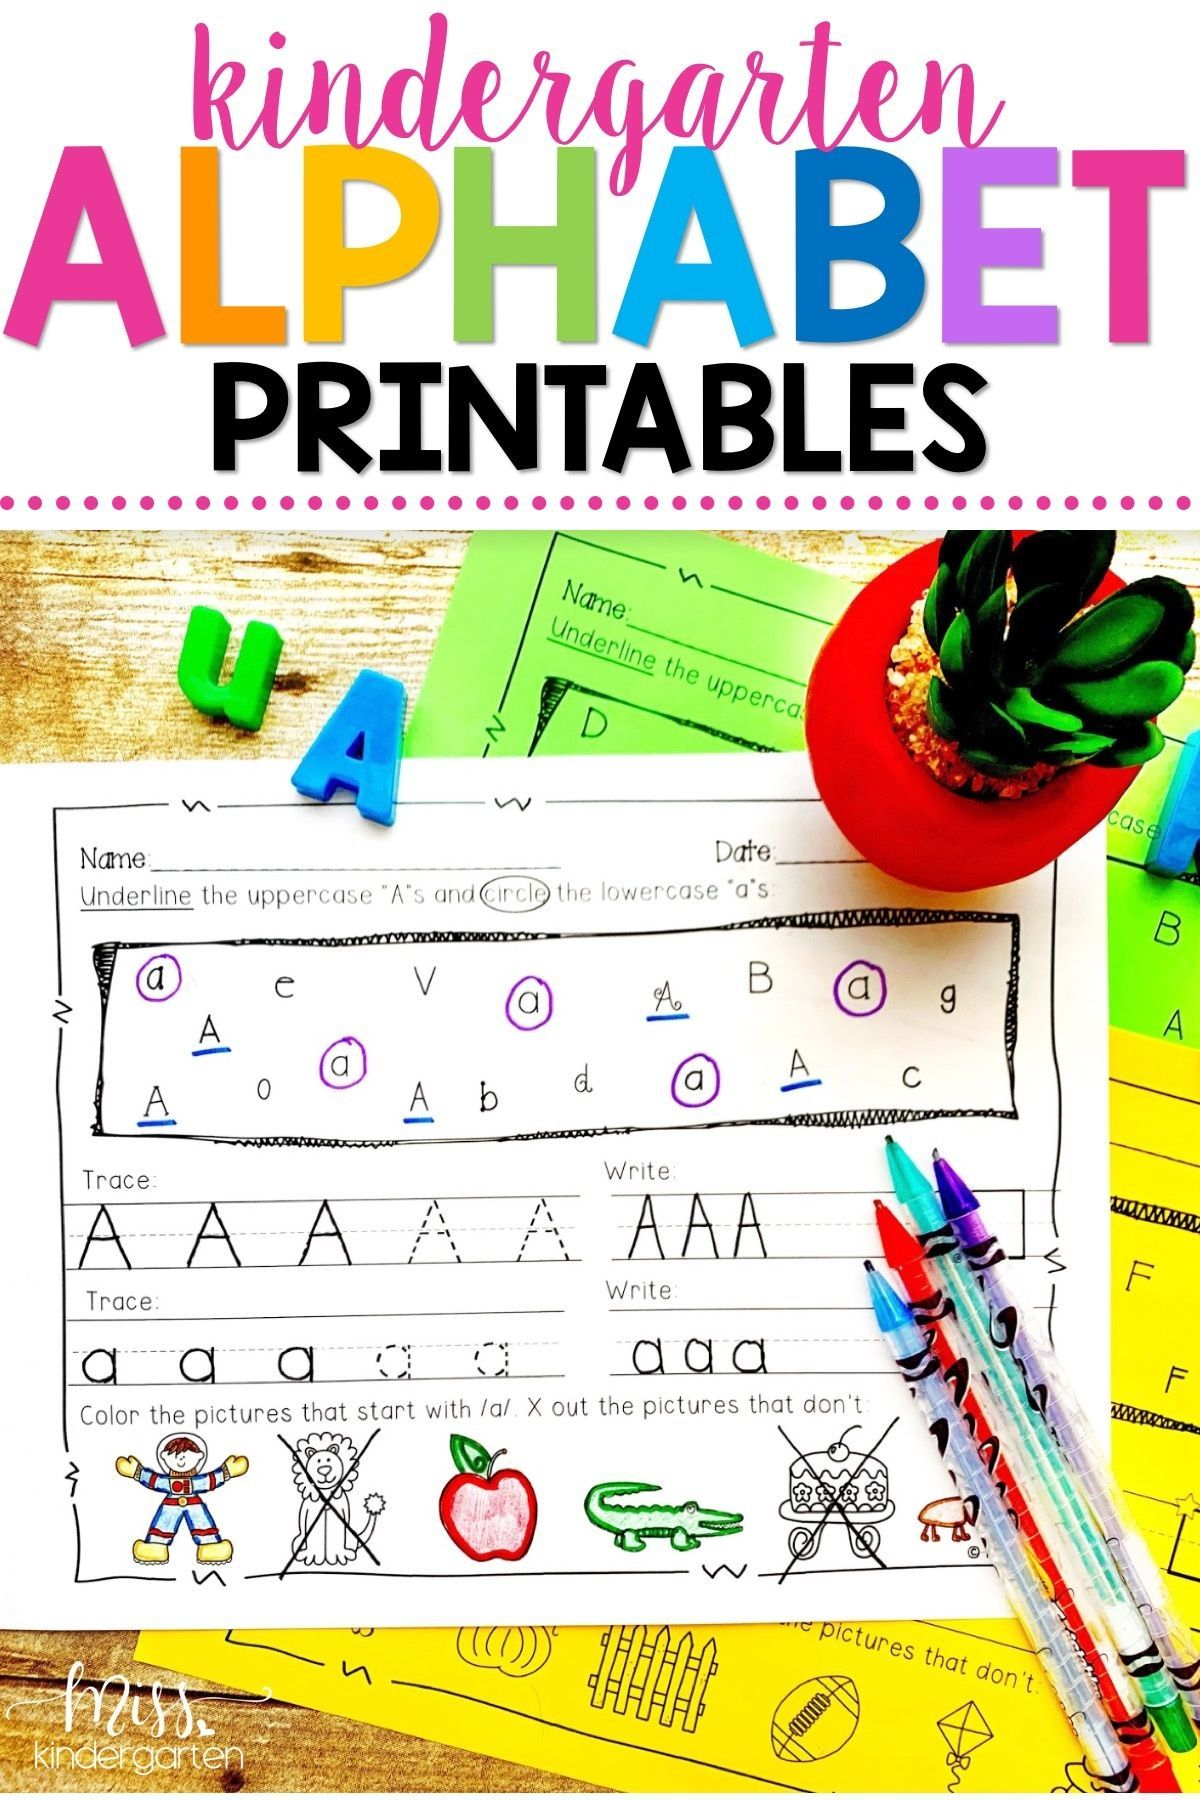 These Fun Printable Alphabet Practice Activities Will Help